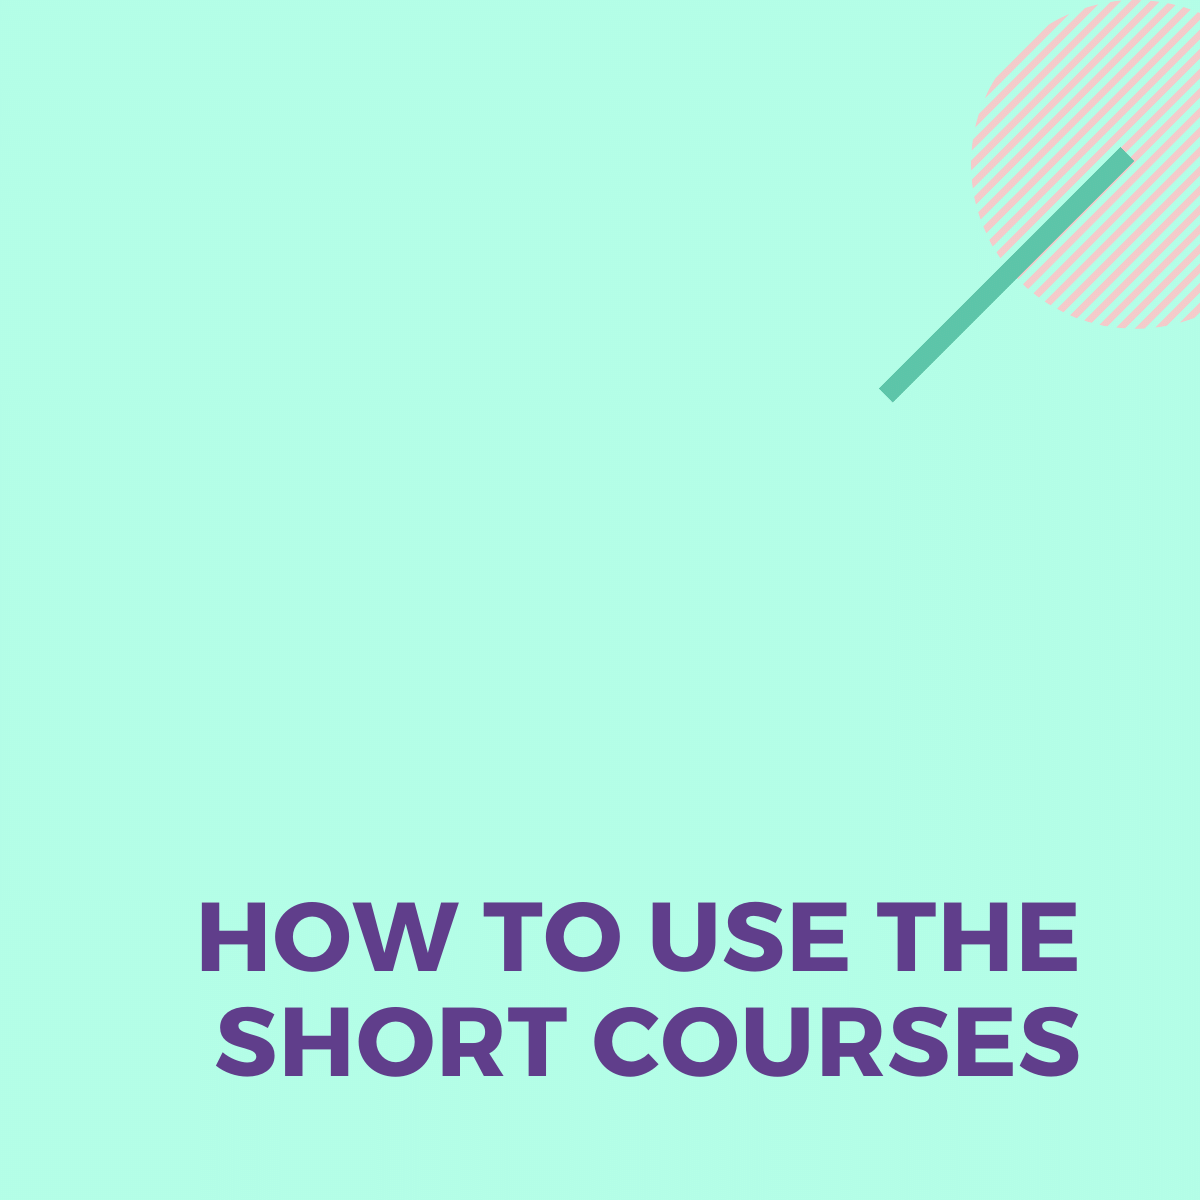 How to use the short courses